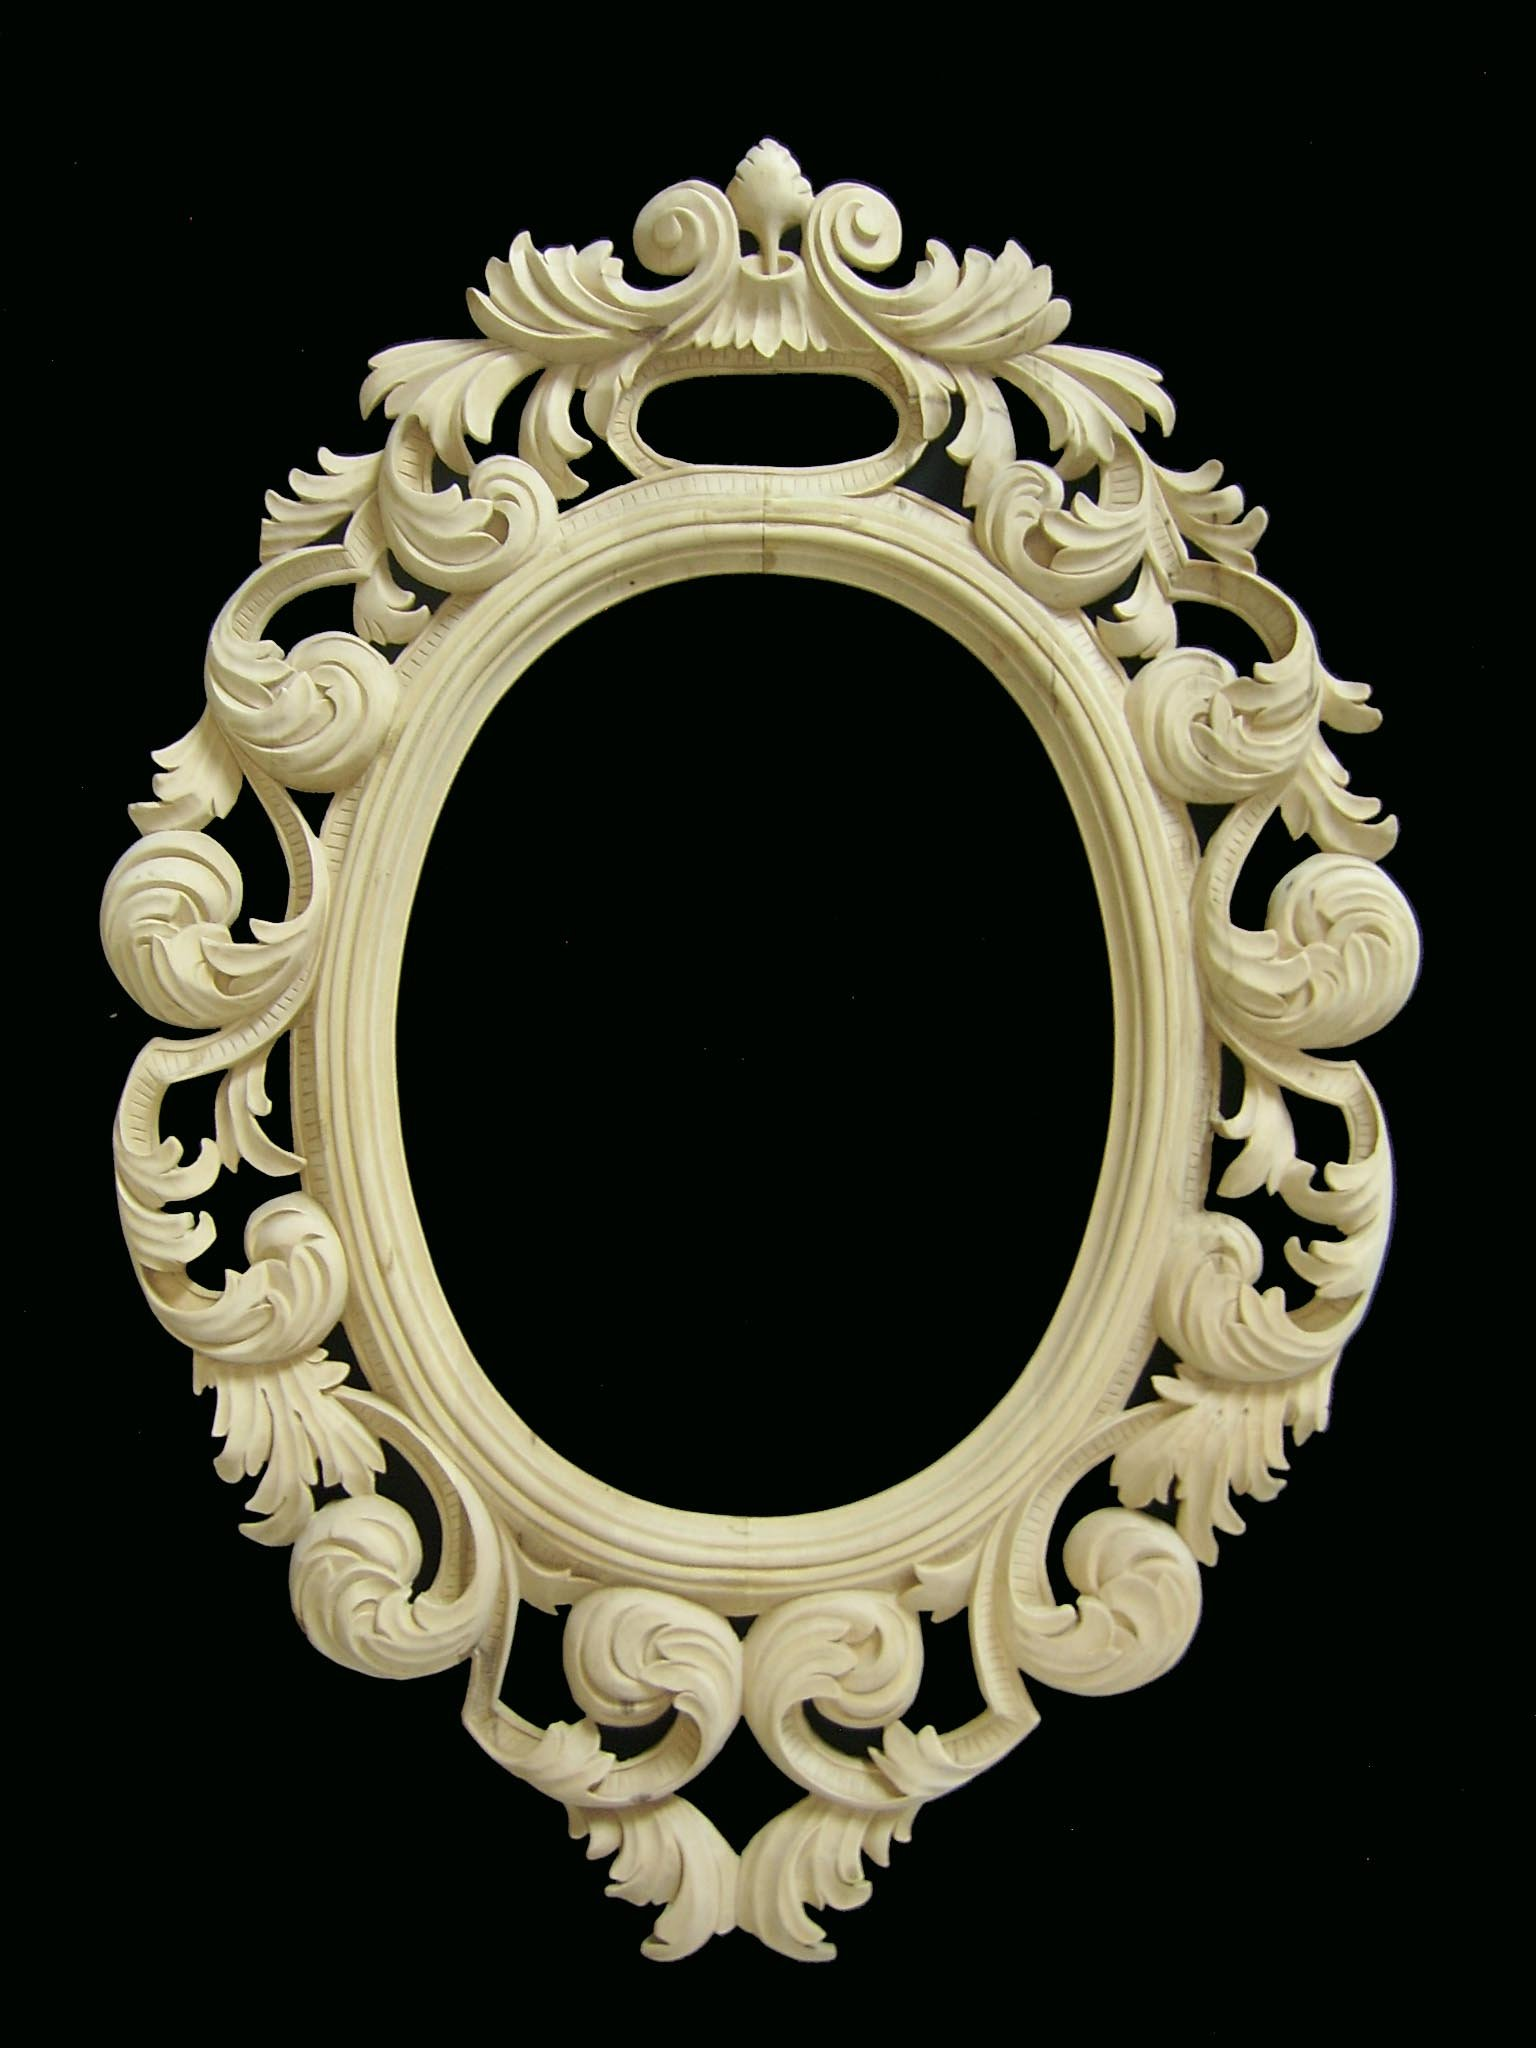 Square clipart mirror frame Frame Circus mirror frame Pinterest